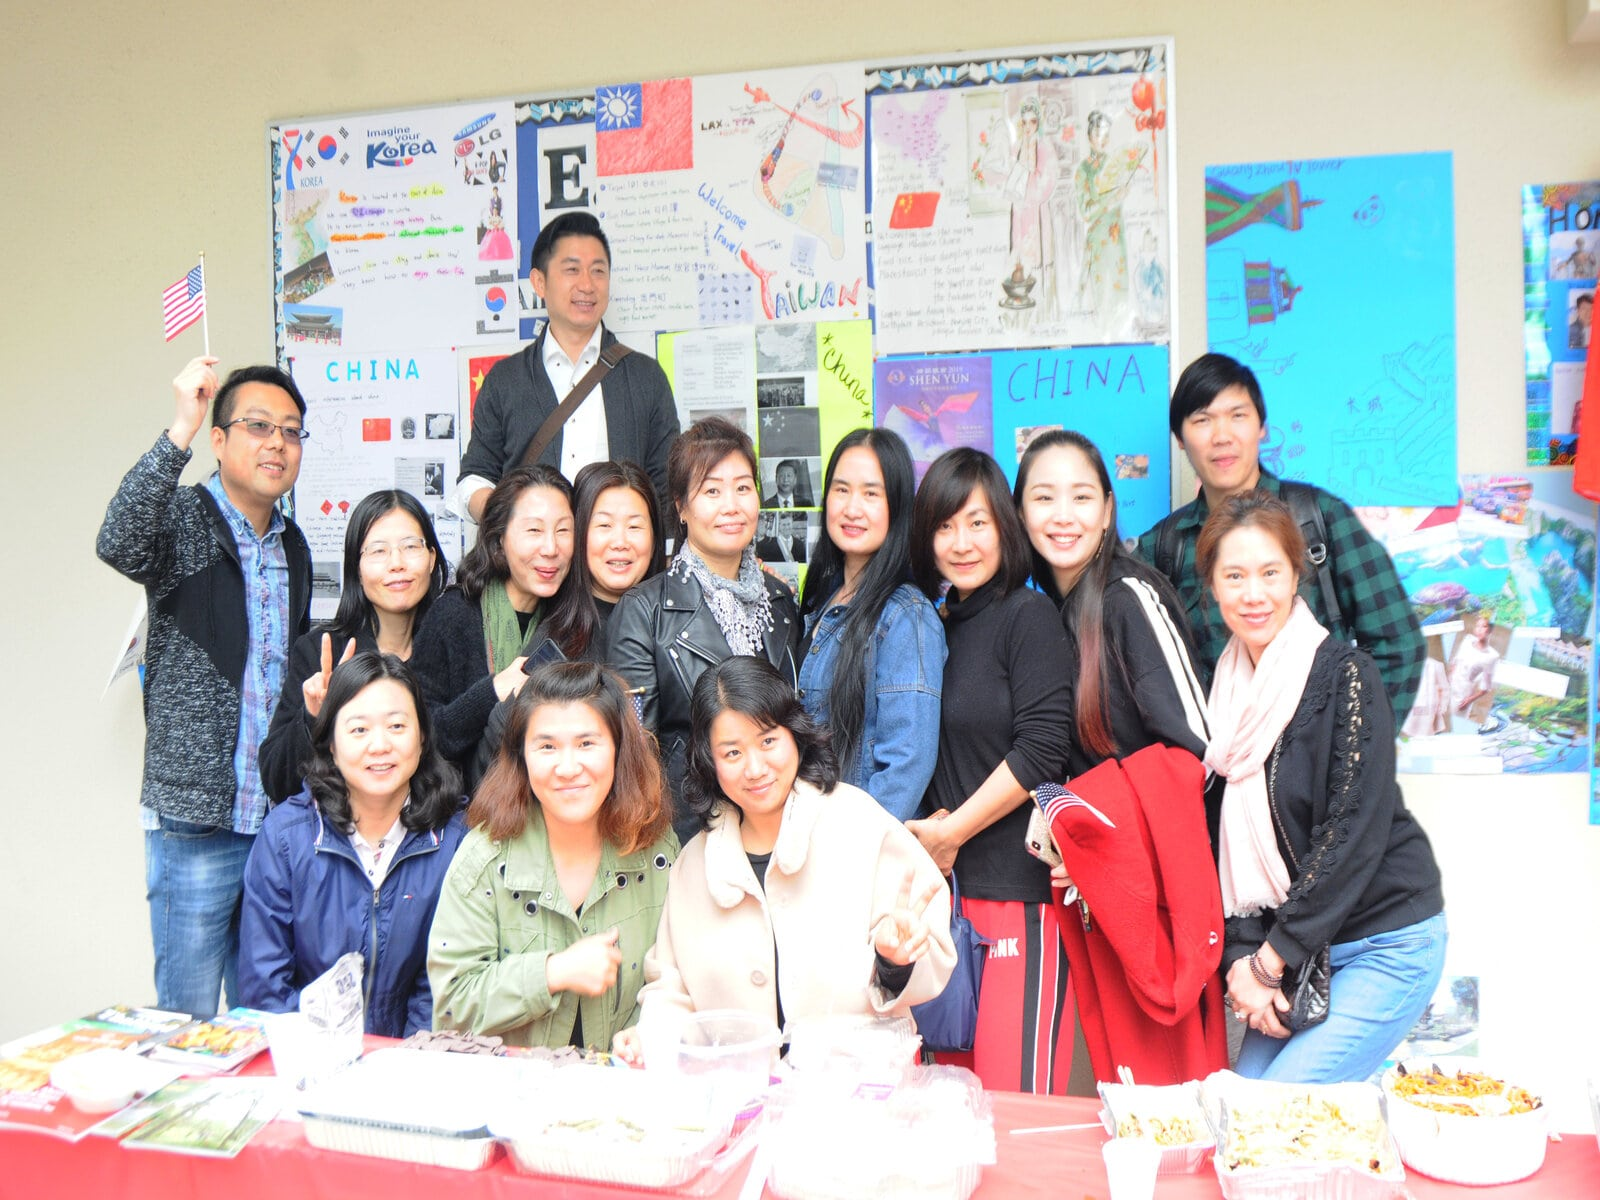 Chinese students near their booth